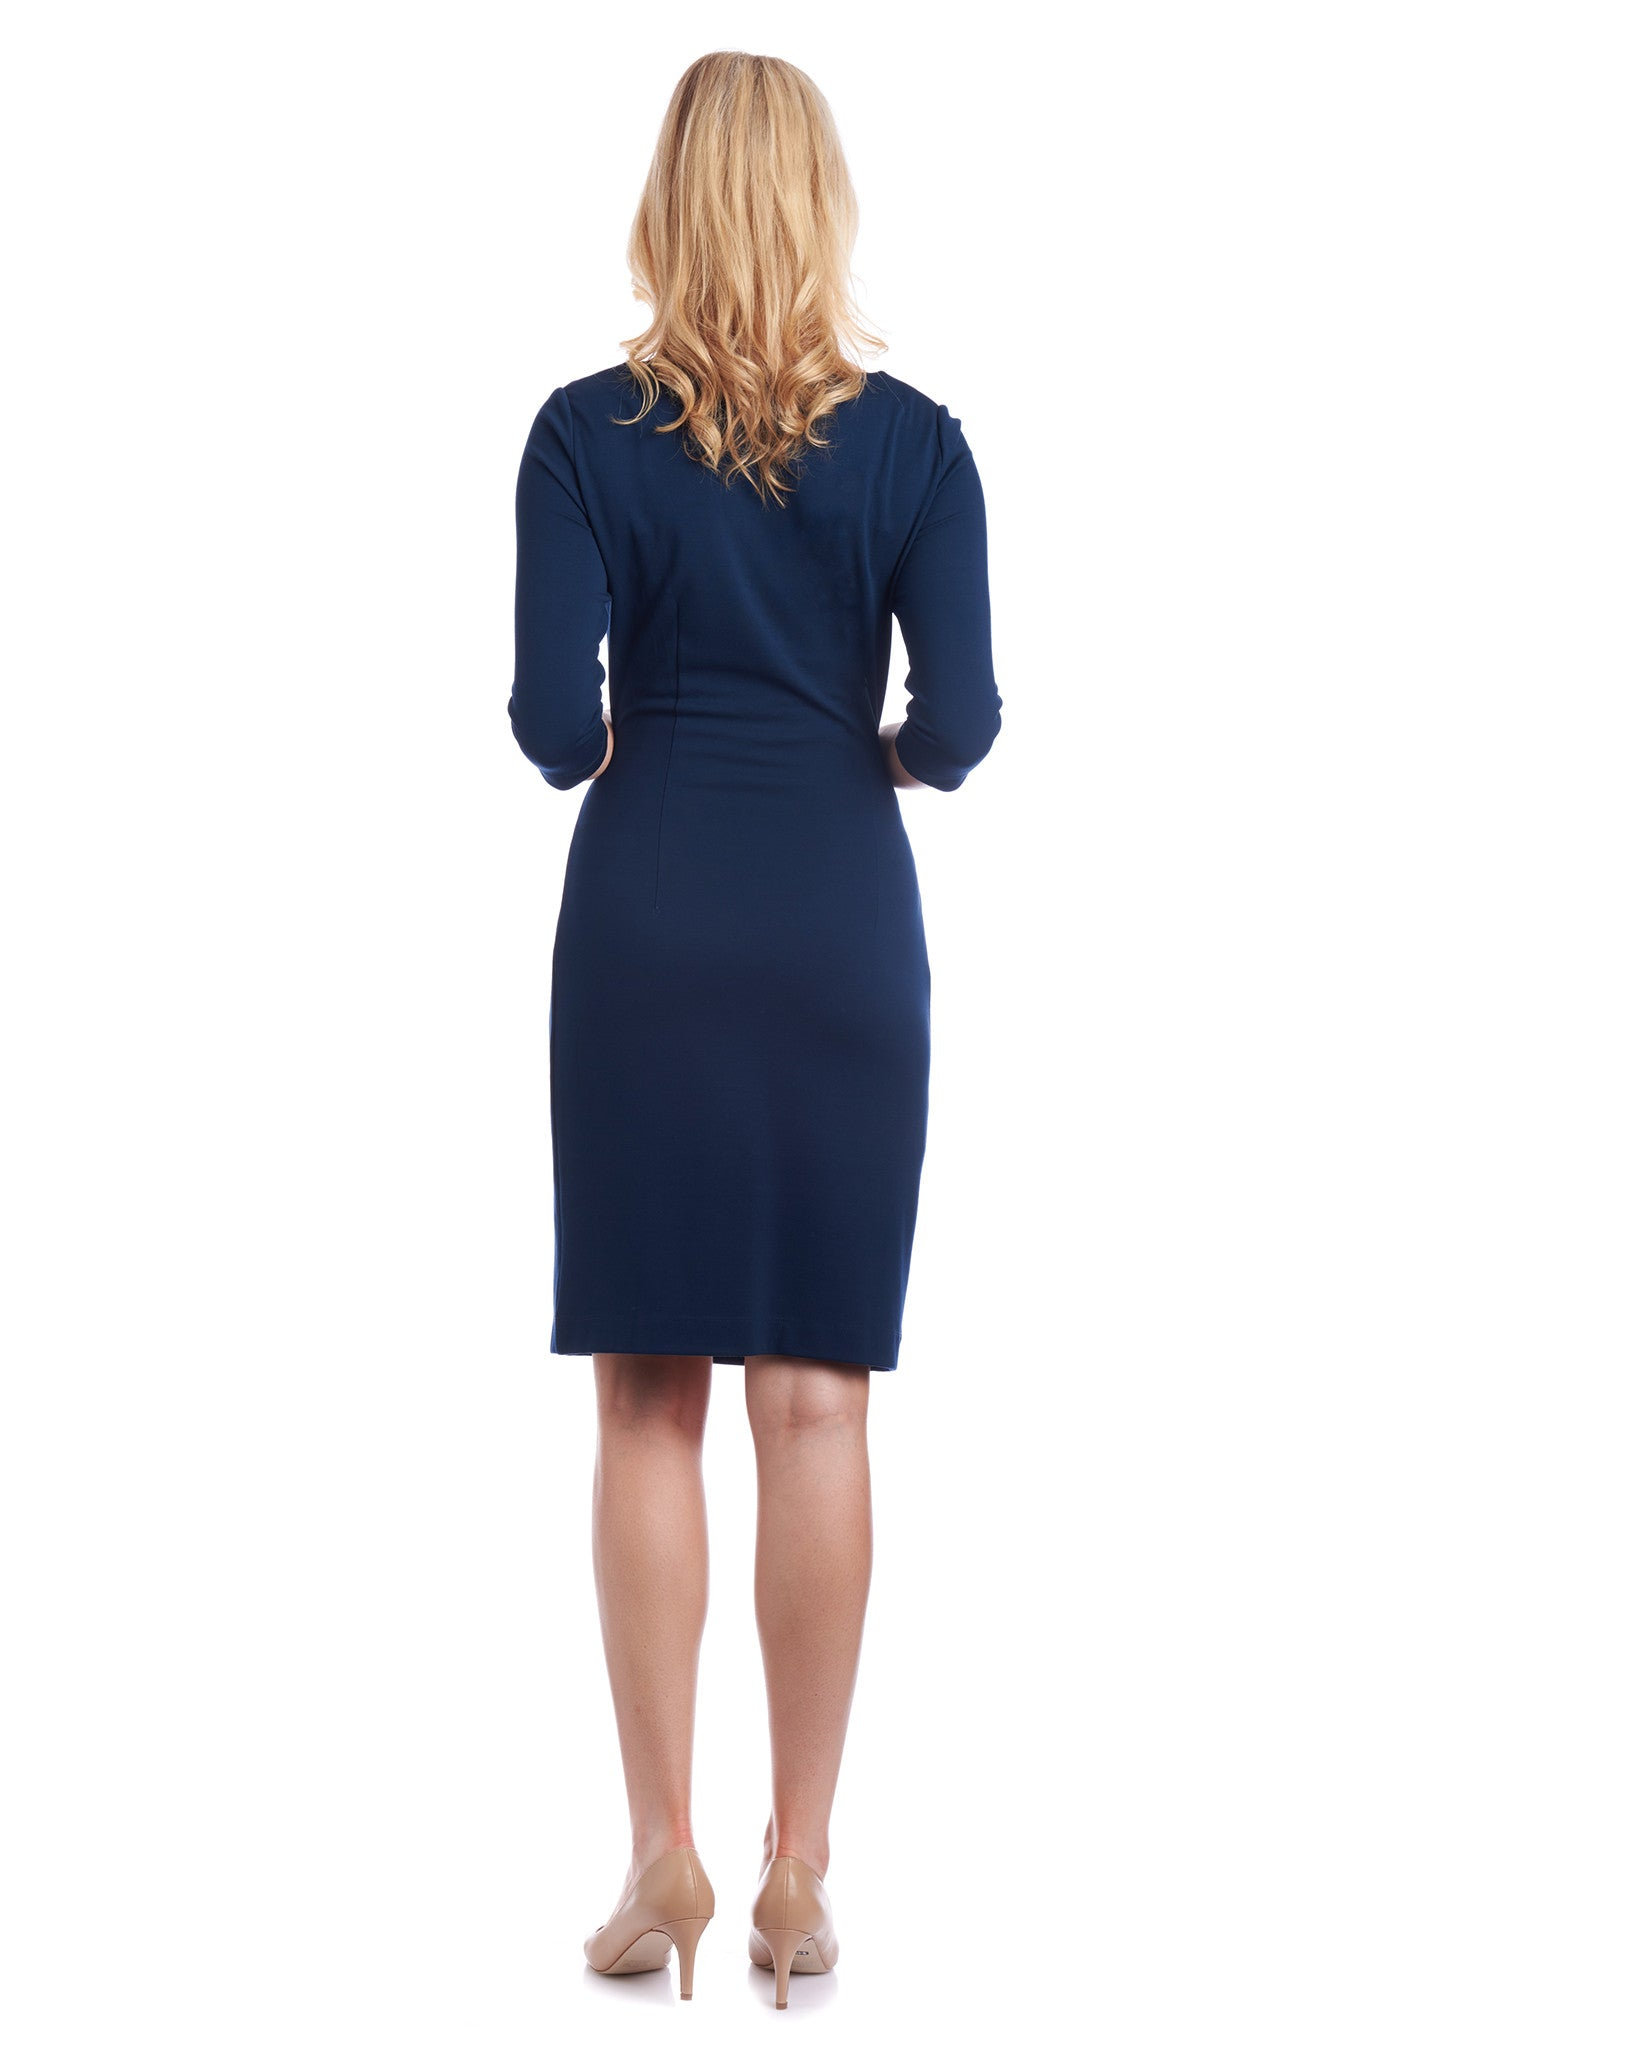 Anna Side Tie Pencil Dress: The adjustable tie waist allows you to choose how tightly you want to make the waist